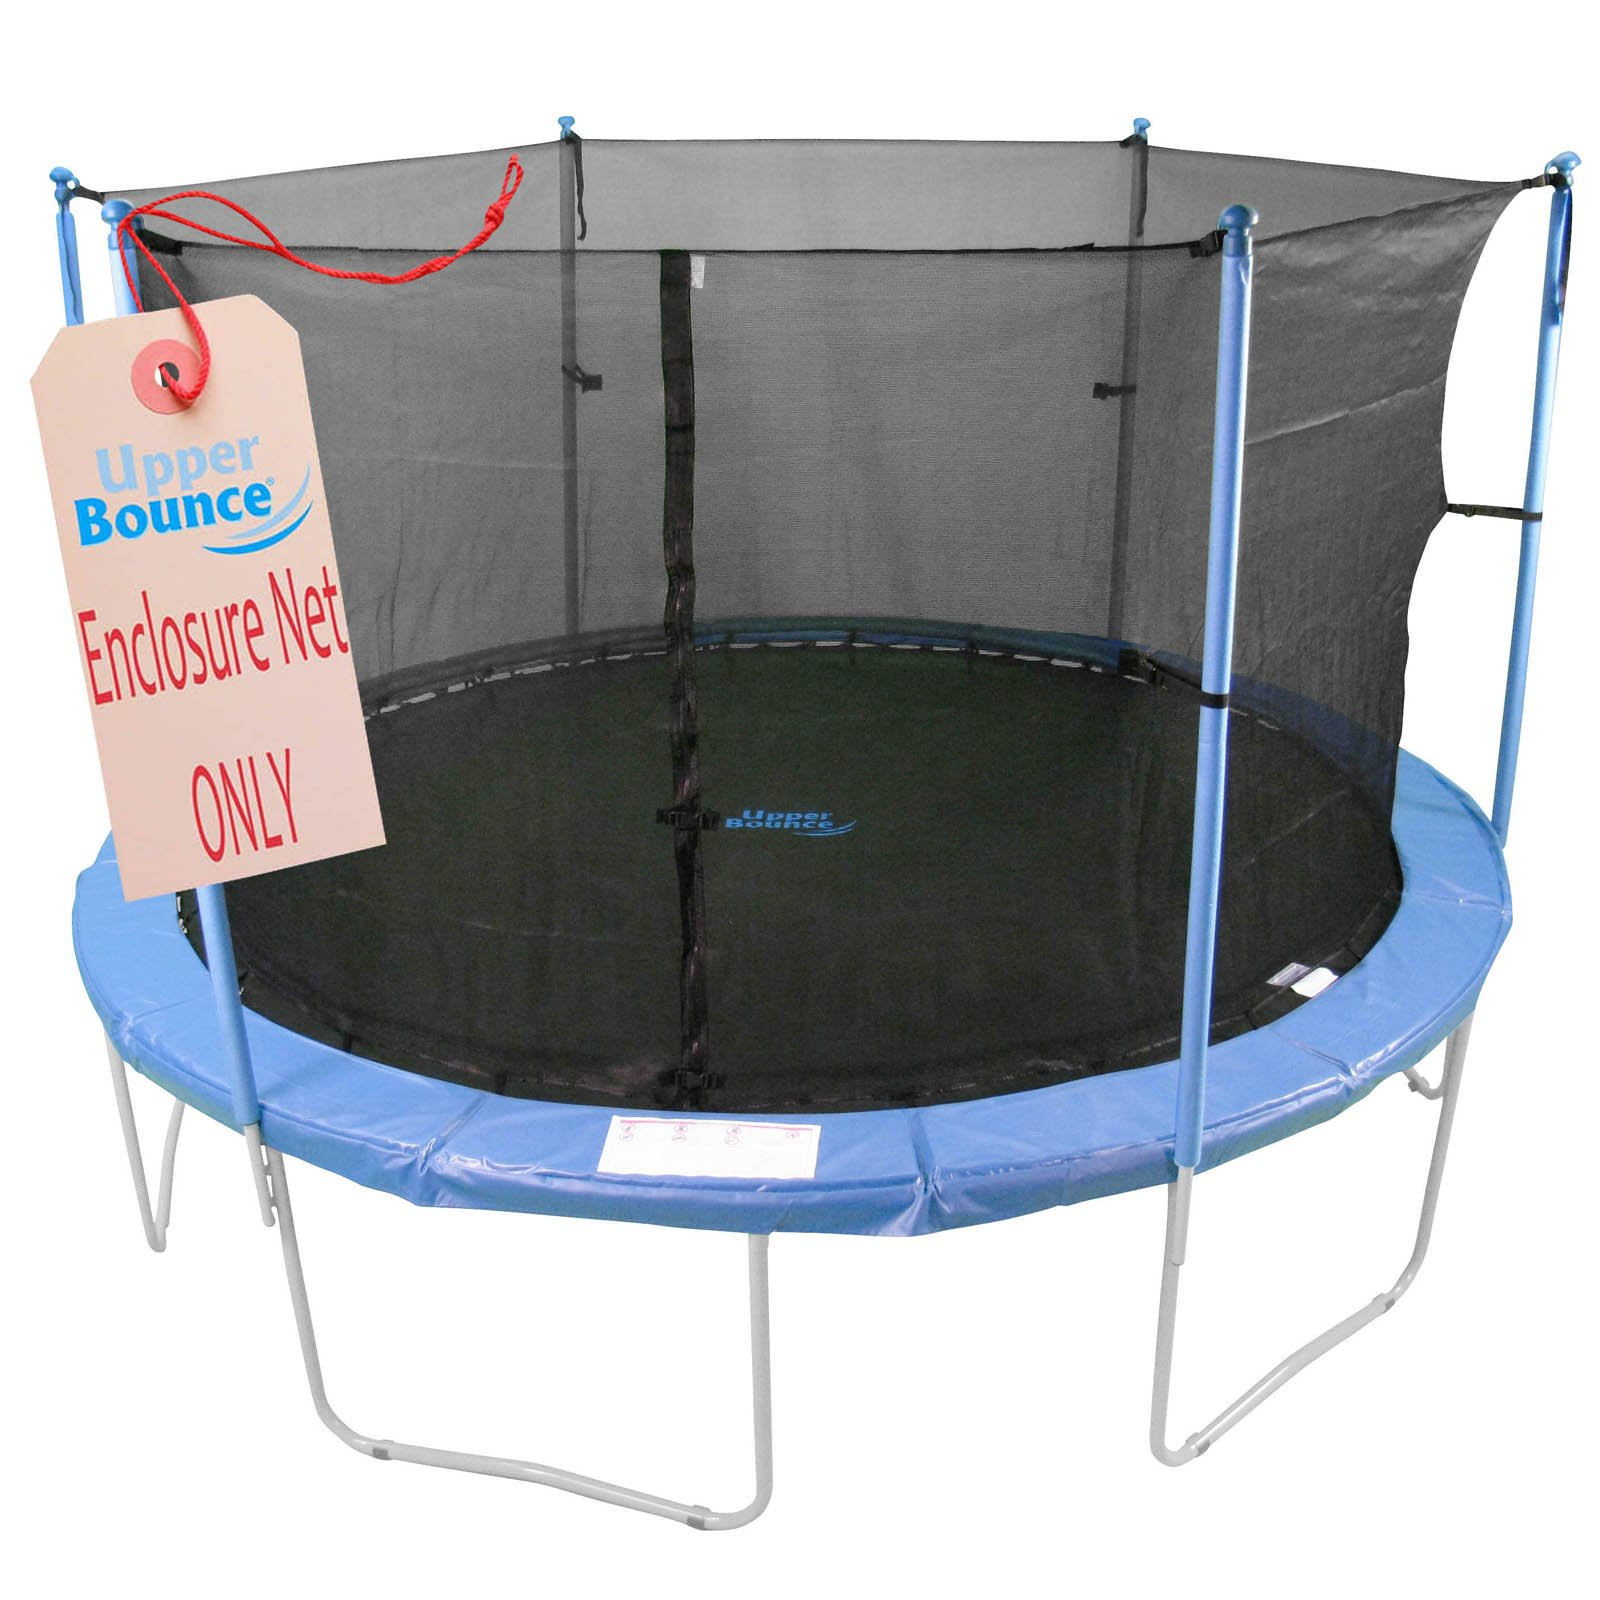 Upper Bounce Trampoline Replacement Enclosure Net, Fits for 8 FT. Round Frames, with Adjustable Straps, Using 4 Poles or 2 Arches - Net Only by Upper Bounce